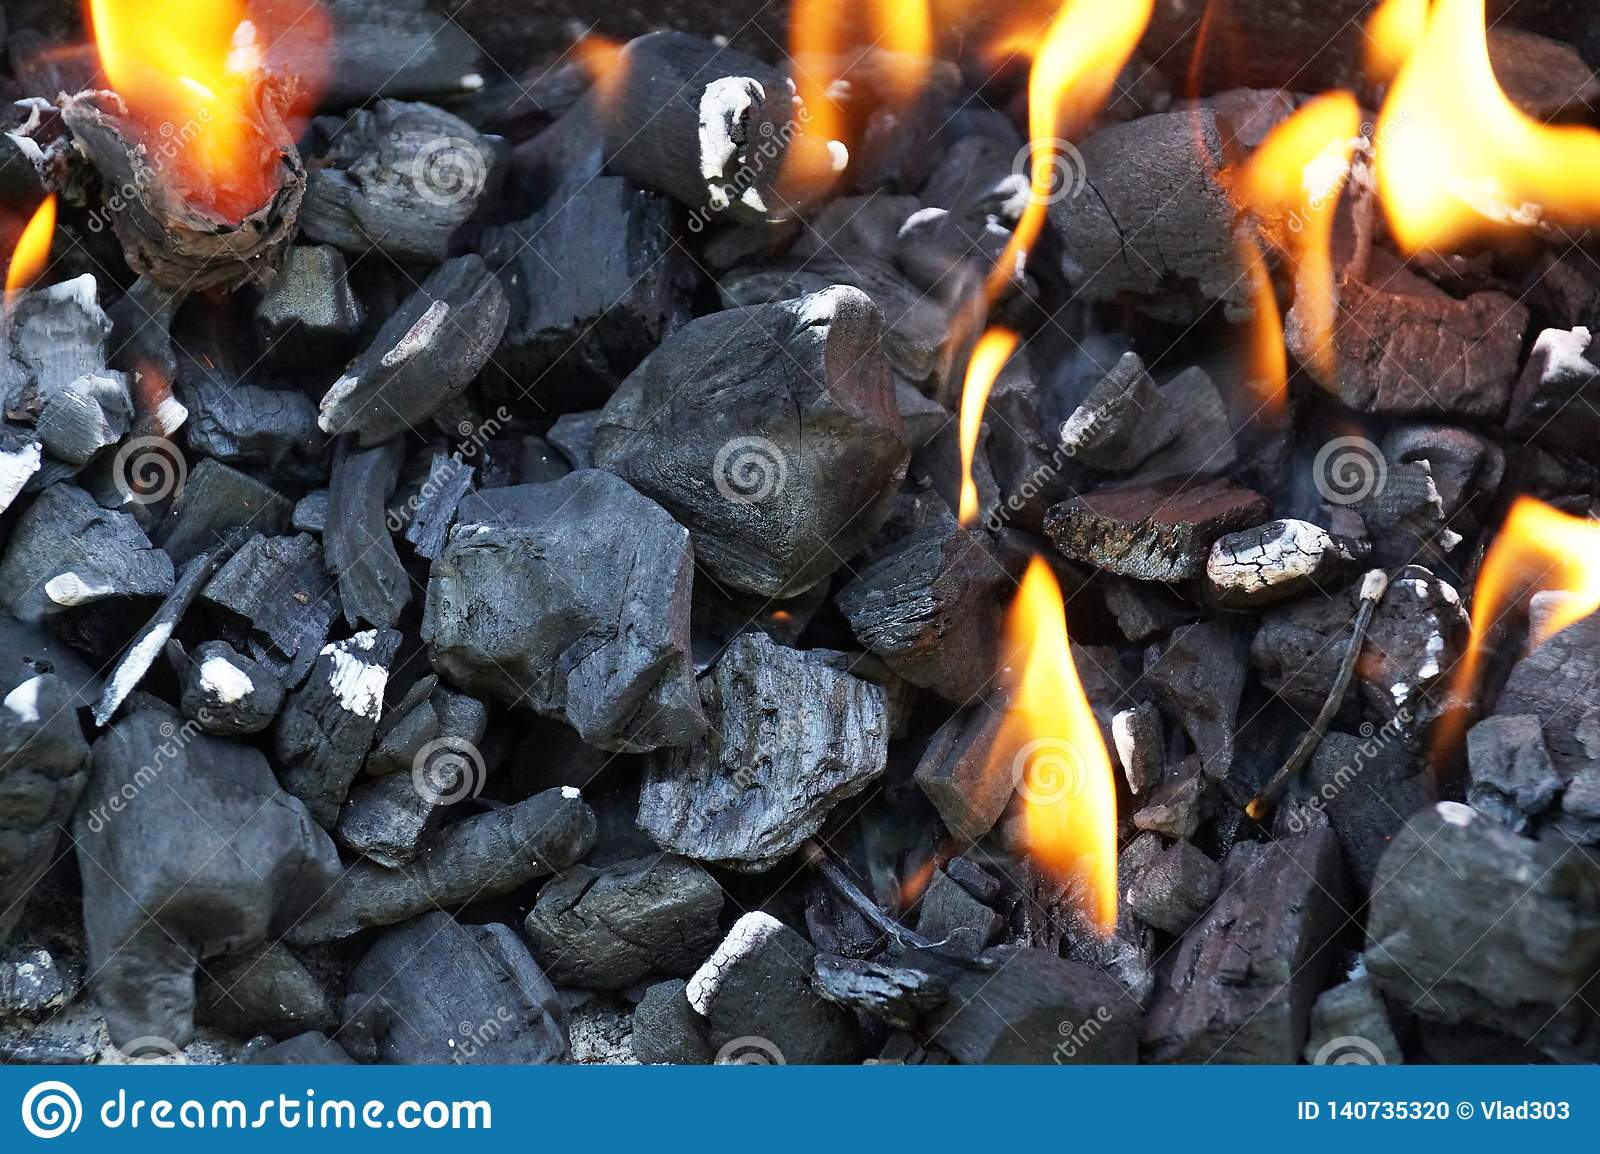 Charcoal During Lighting Up Lighting Fire In The Grill Stock Photo Image Of Charcoal Coal 140735320